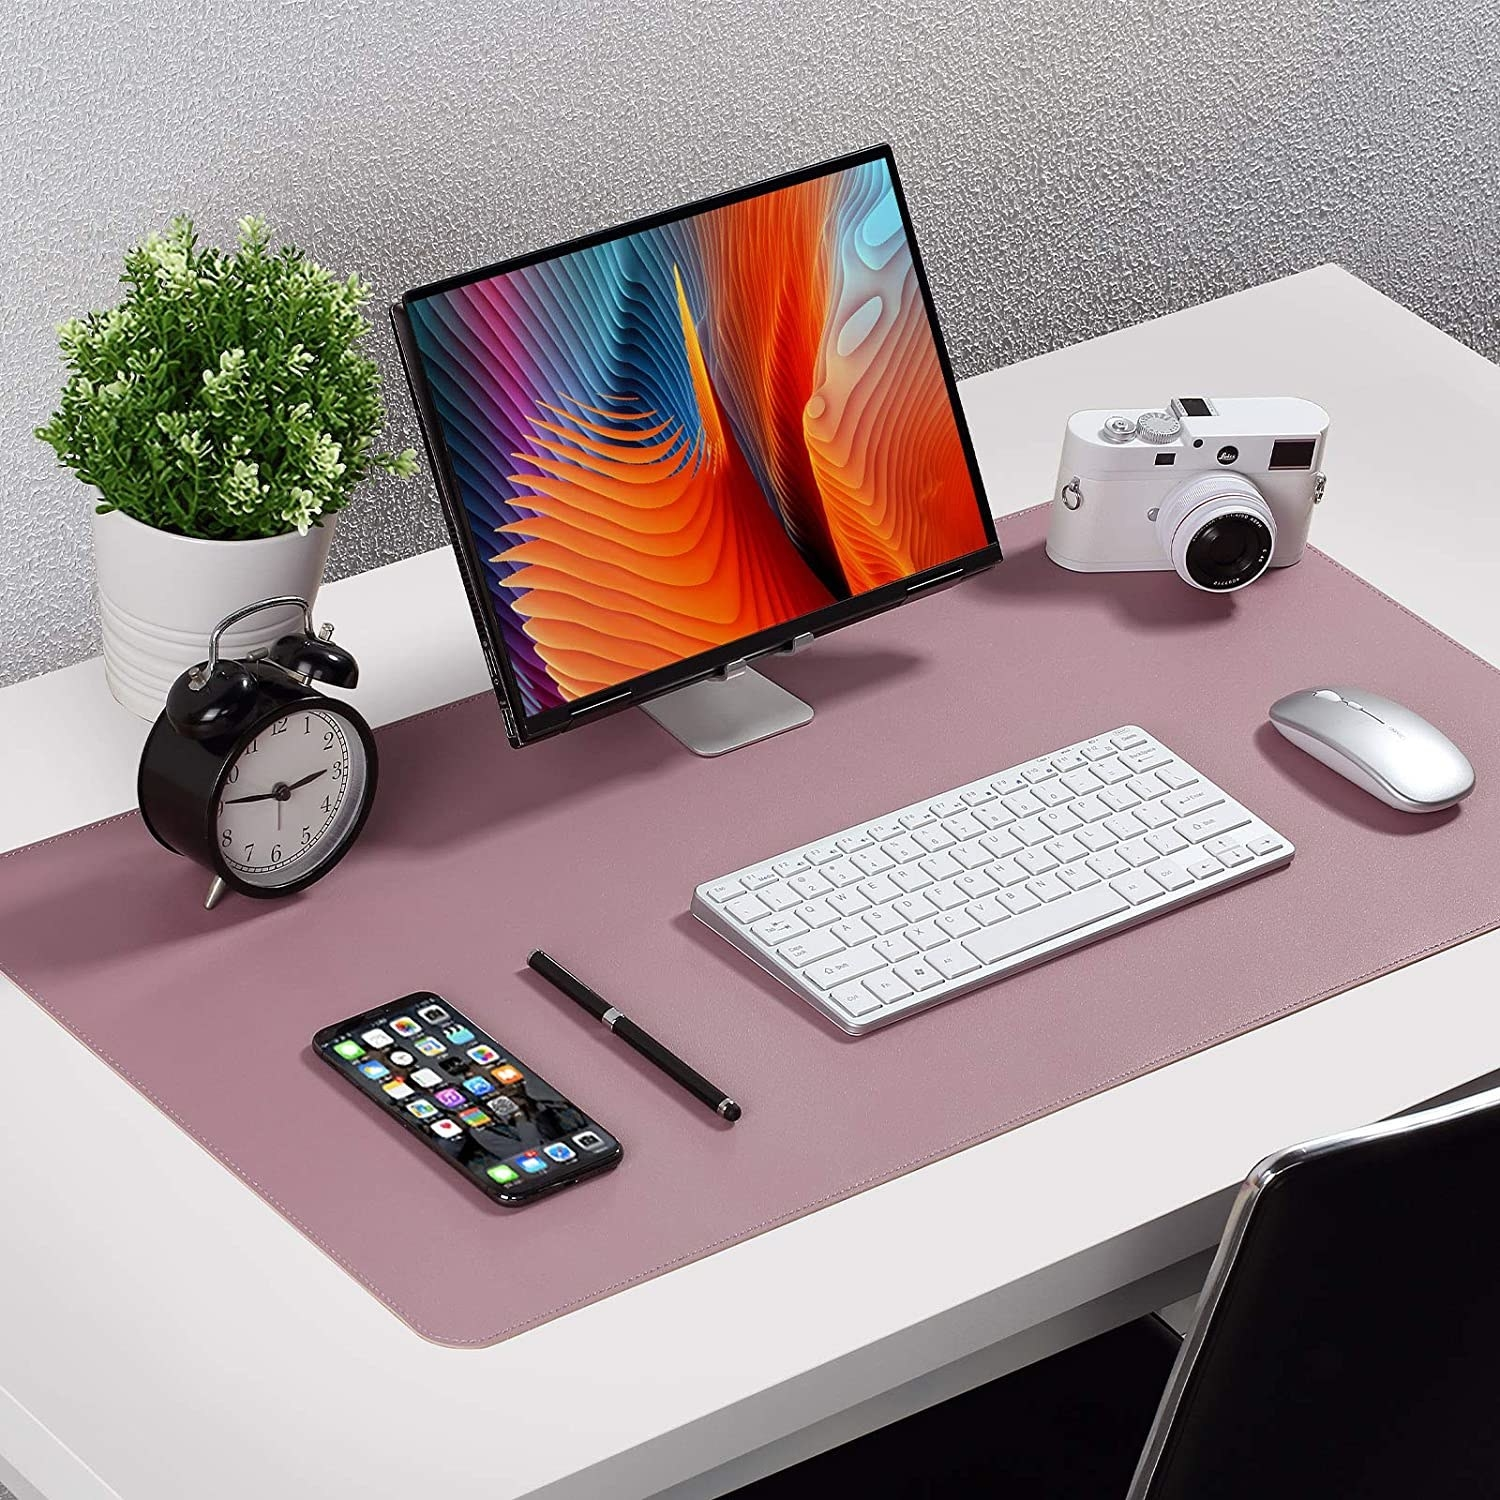 A desk pad with a computer, phone, camera, and various other desk accessories on it